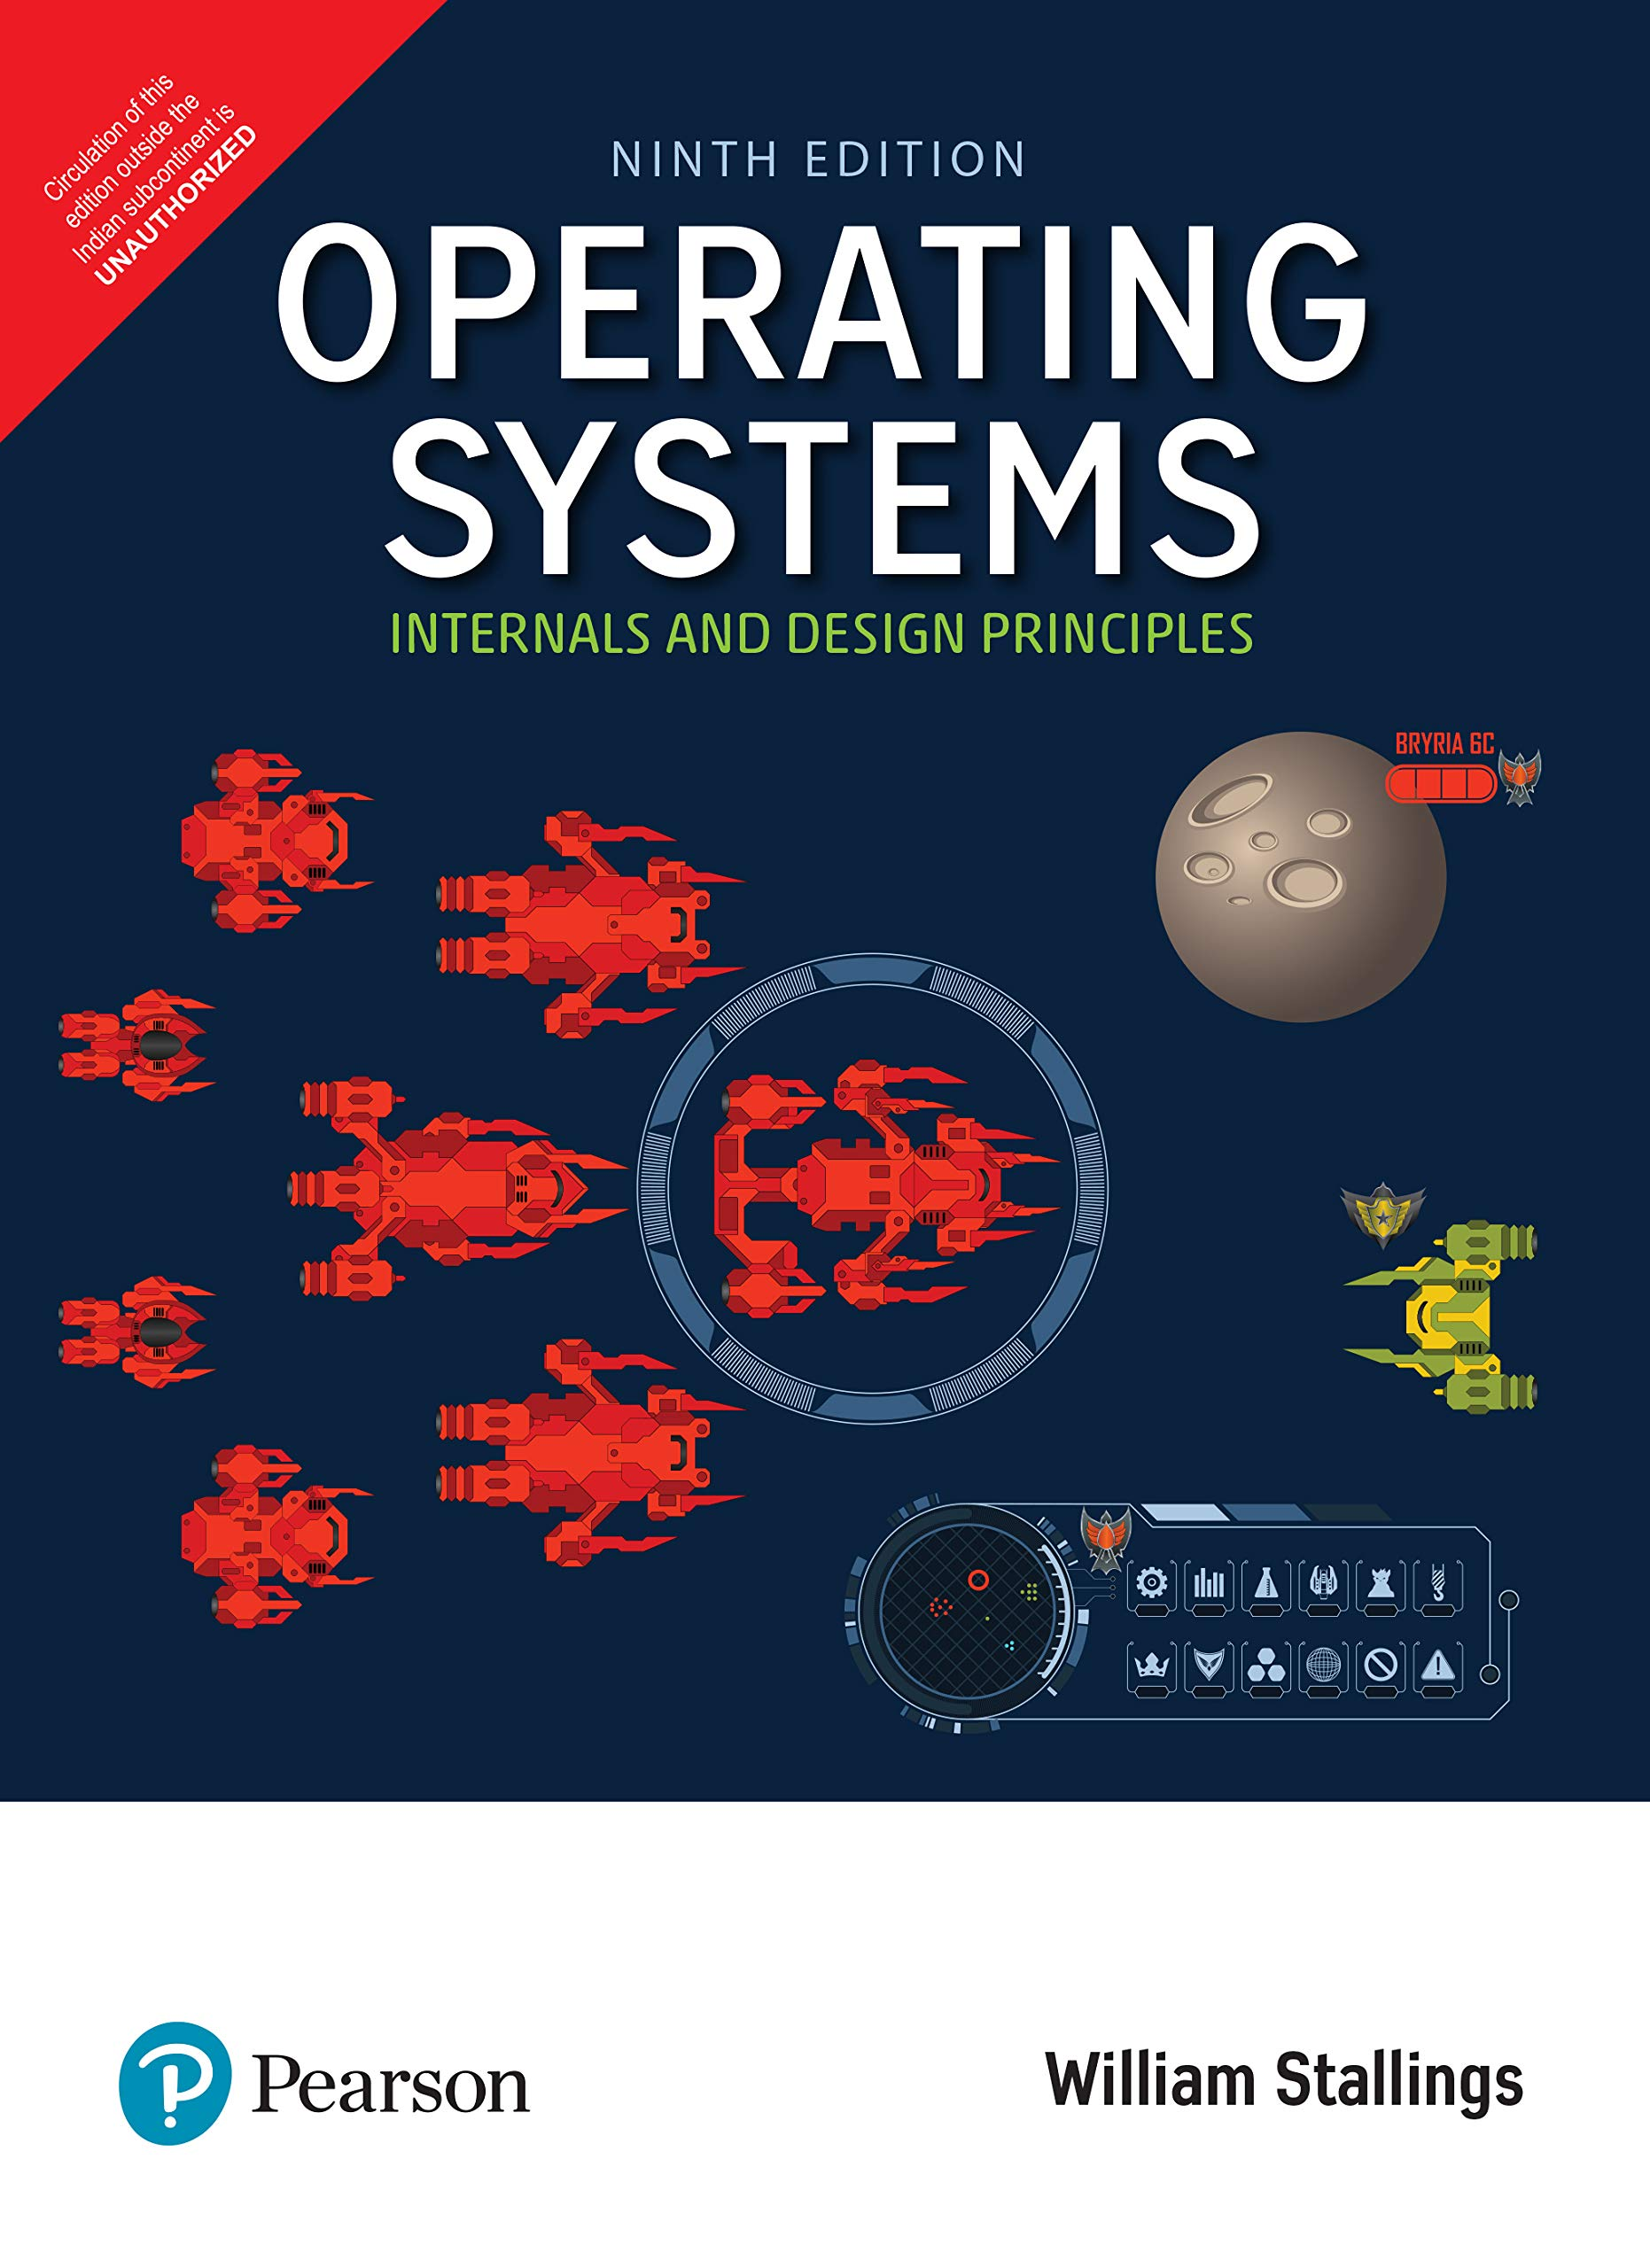 Operating Systems Internals And Design Principles 9 E William Stallings 9789352866717 Amazon Com Books